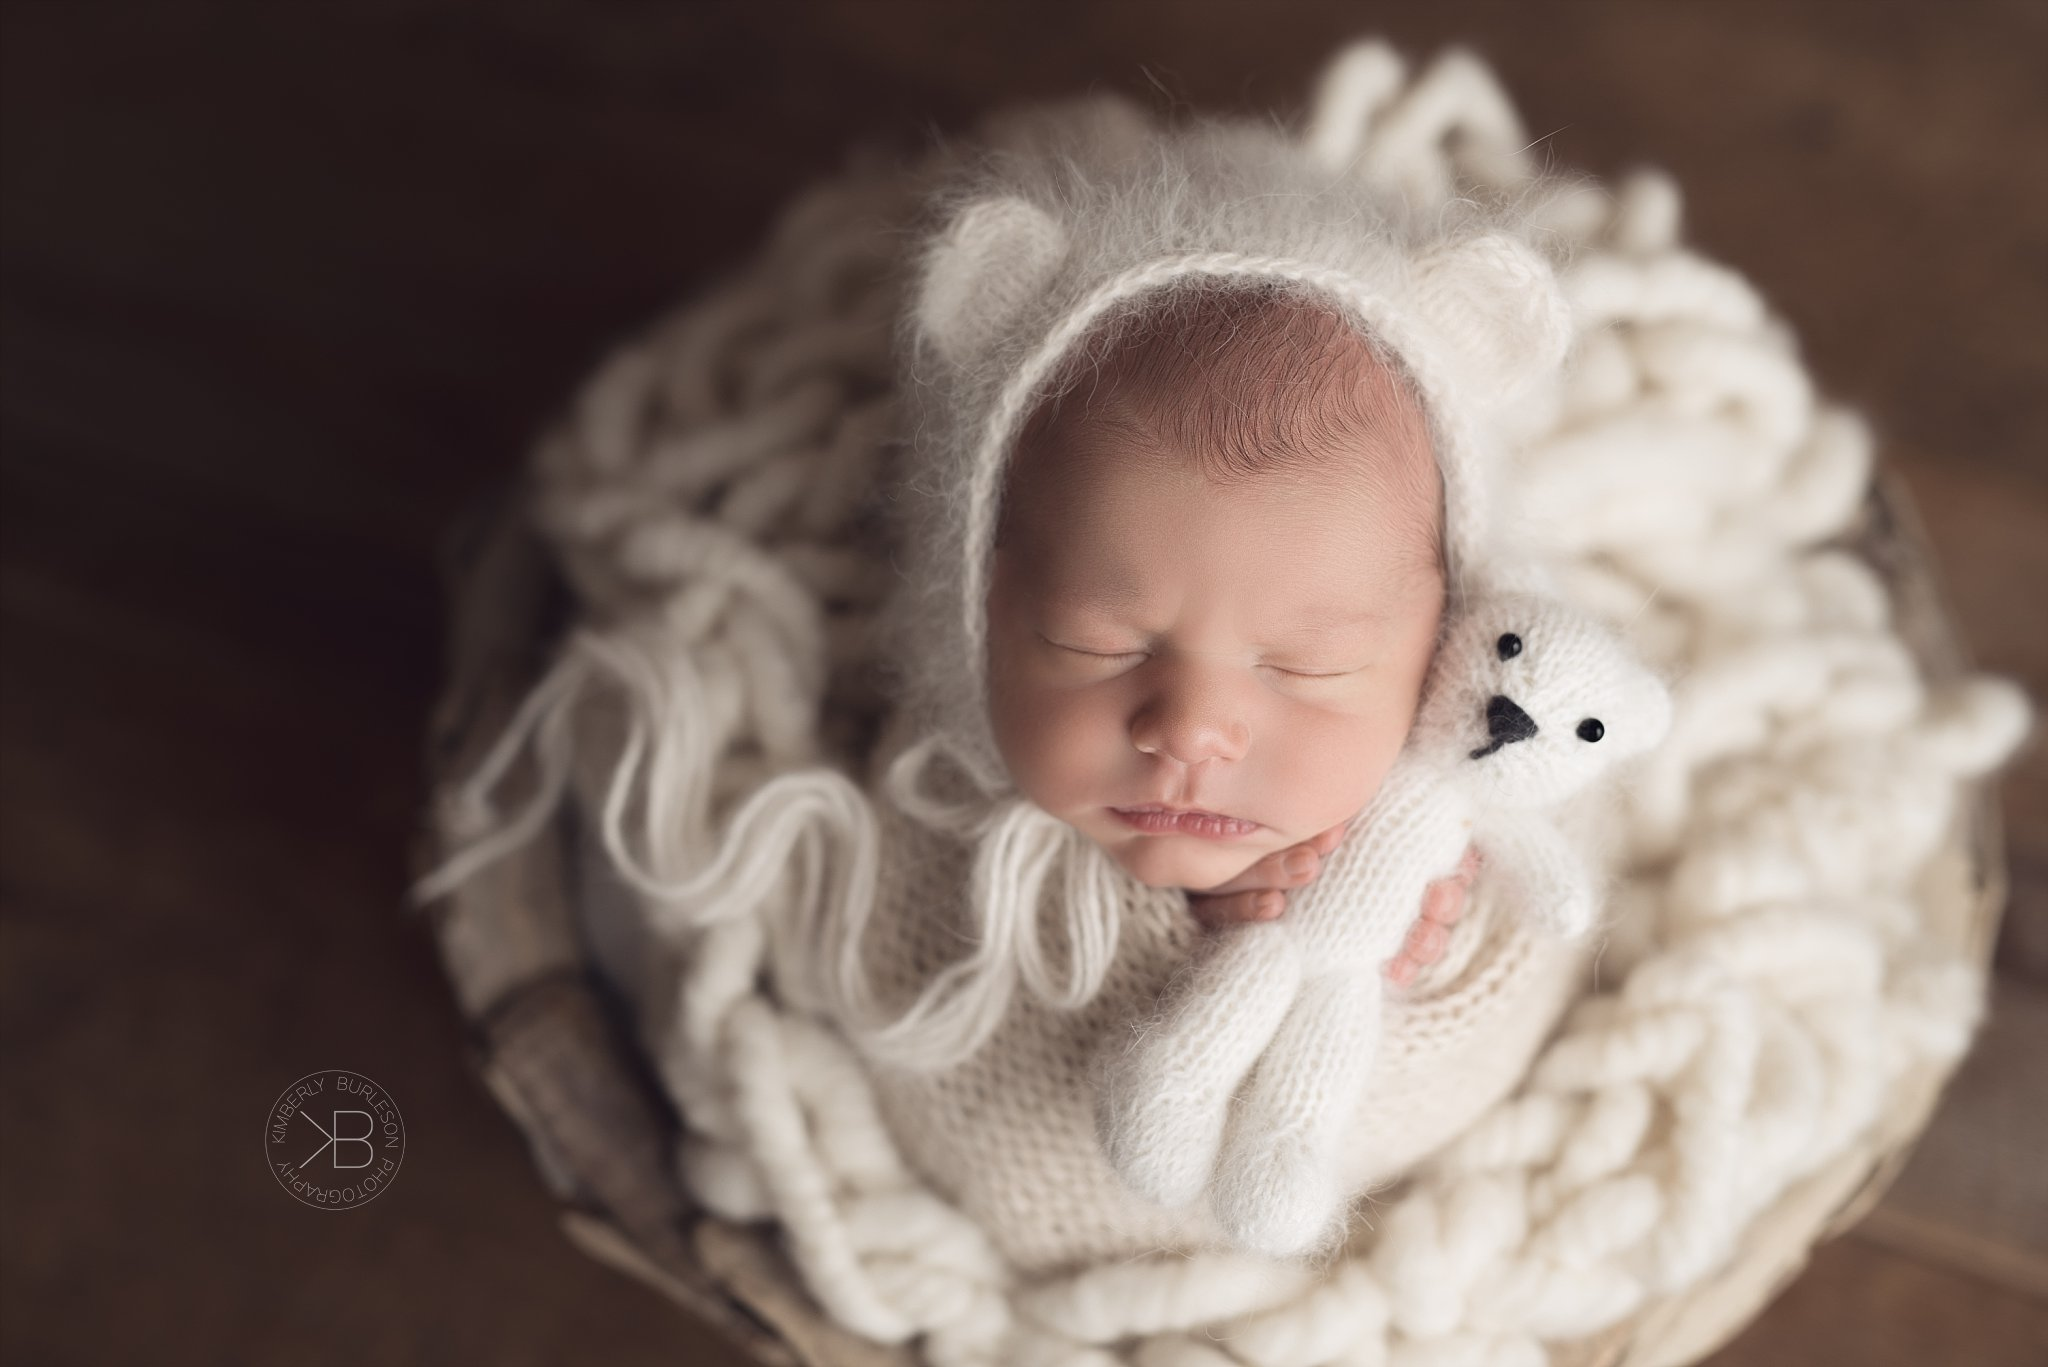 houston baby boy newborn photo shoot neutral colors kimberly burleson photography